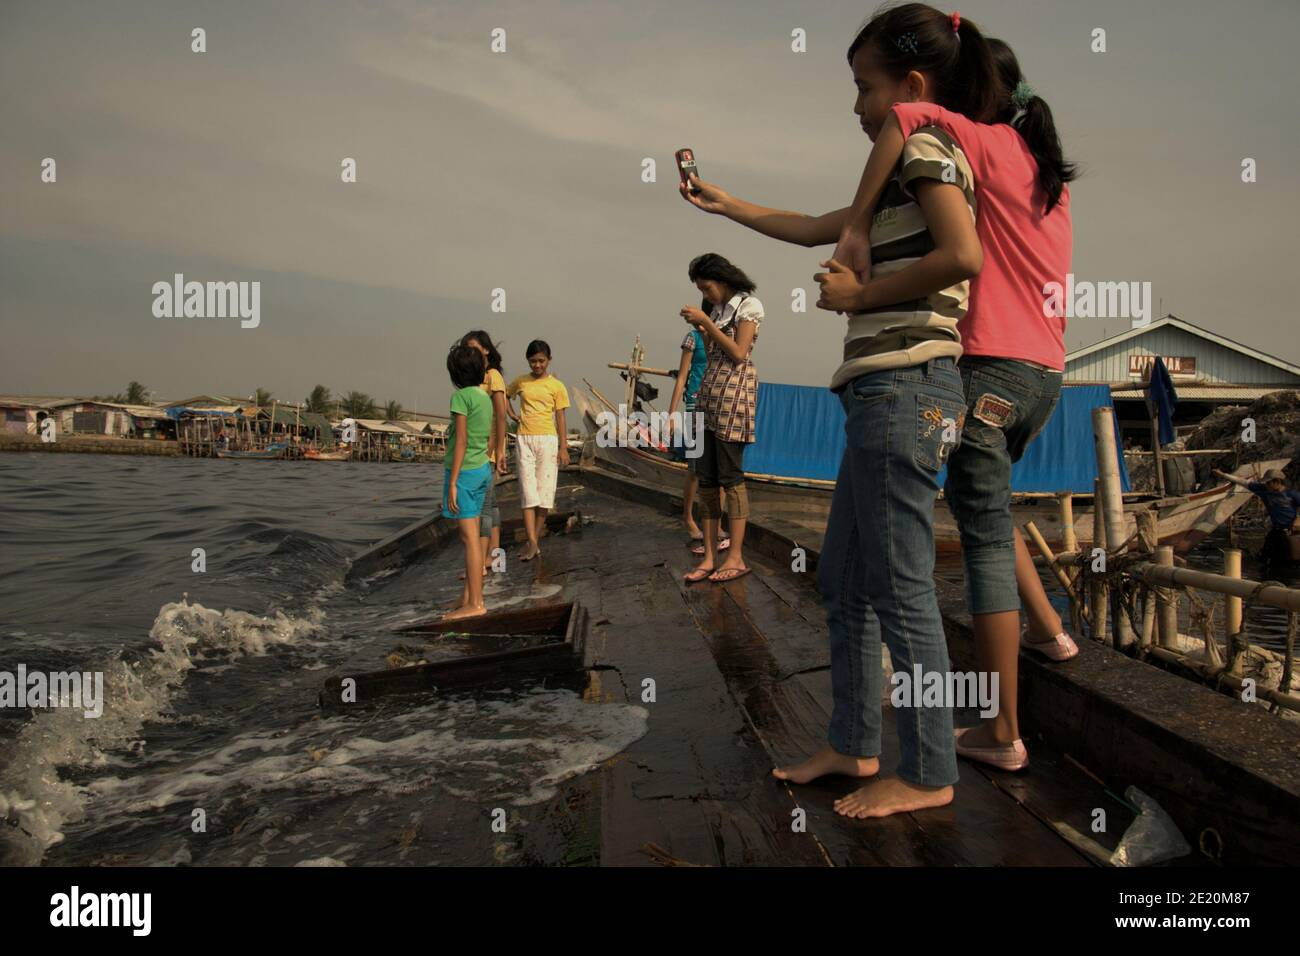 Teenagers taking selfie photo with mobile phone camera, as they are having a leisure time on a broken boat tied to the beach in the fishing village of Cilincing, on the coastal area of Jakarta, Indonesia. Archival photo (2008). © Reynold Sumayku Stock Photo